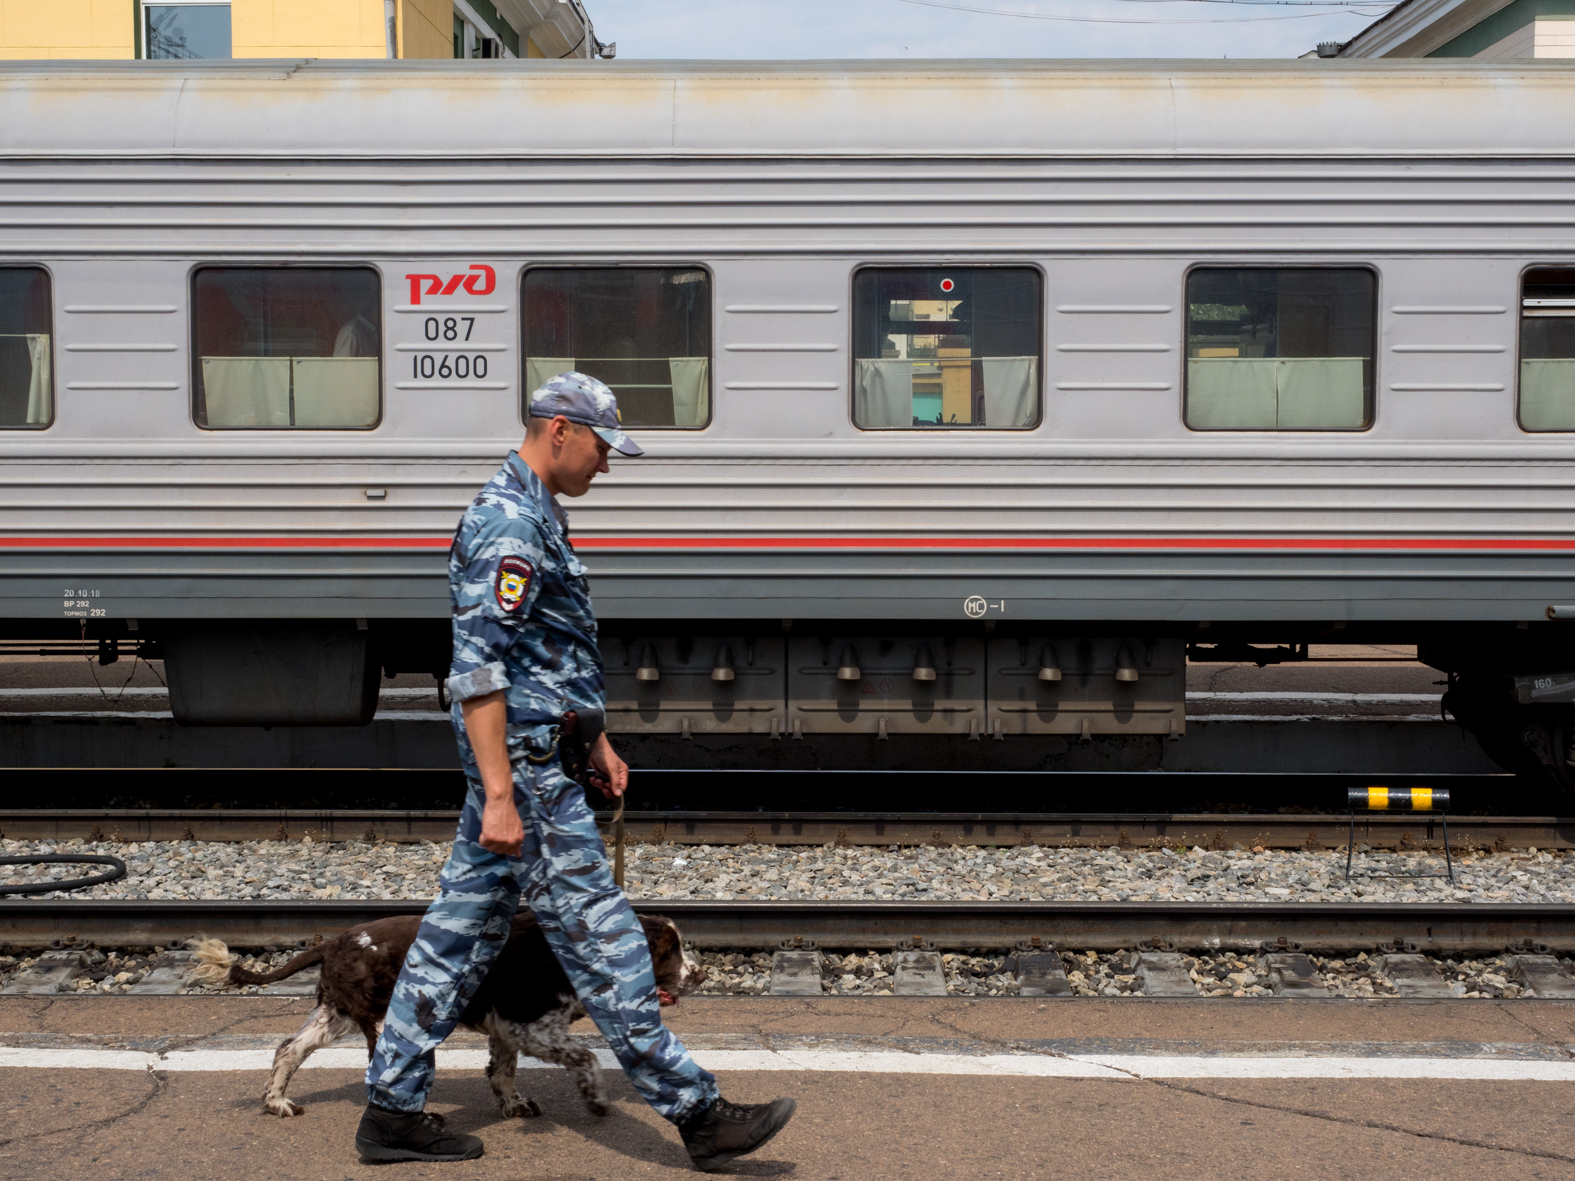 A police sniffer dog patrols a station platform during a stop on the Trans-Siberian Railway from Moscow-Vladivostok. Spanning a length of 9,289km, it's the longest uninterrupted single country train journey in the world. It has connected Moscow with Vladivostok since 1916, and is still being expanded. It was built between 1891 and 1916 under the supervision of Russian government ministers personally appointed by Tsar Alexander III and his son, the Tsarevich Nicholas (later Tsar Nicholas II).